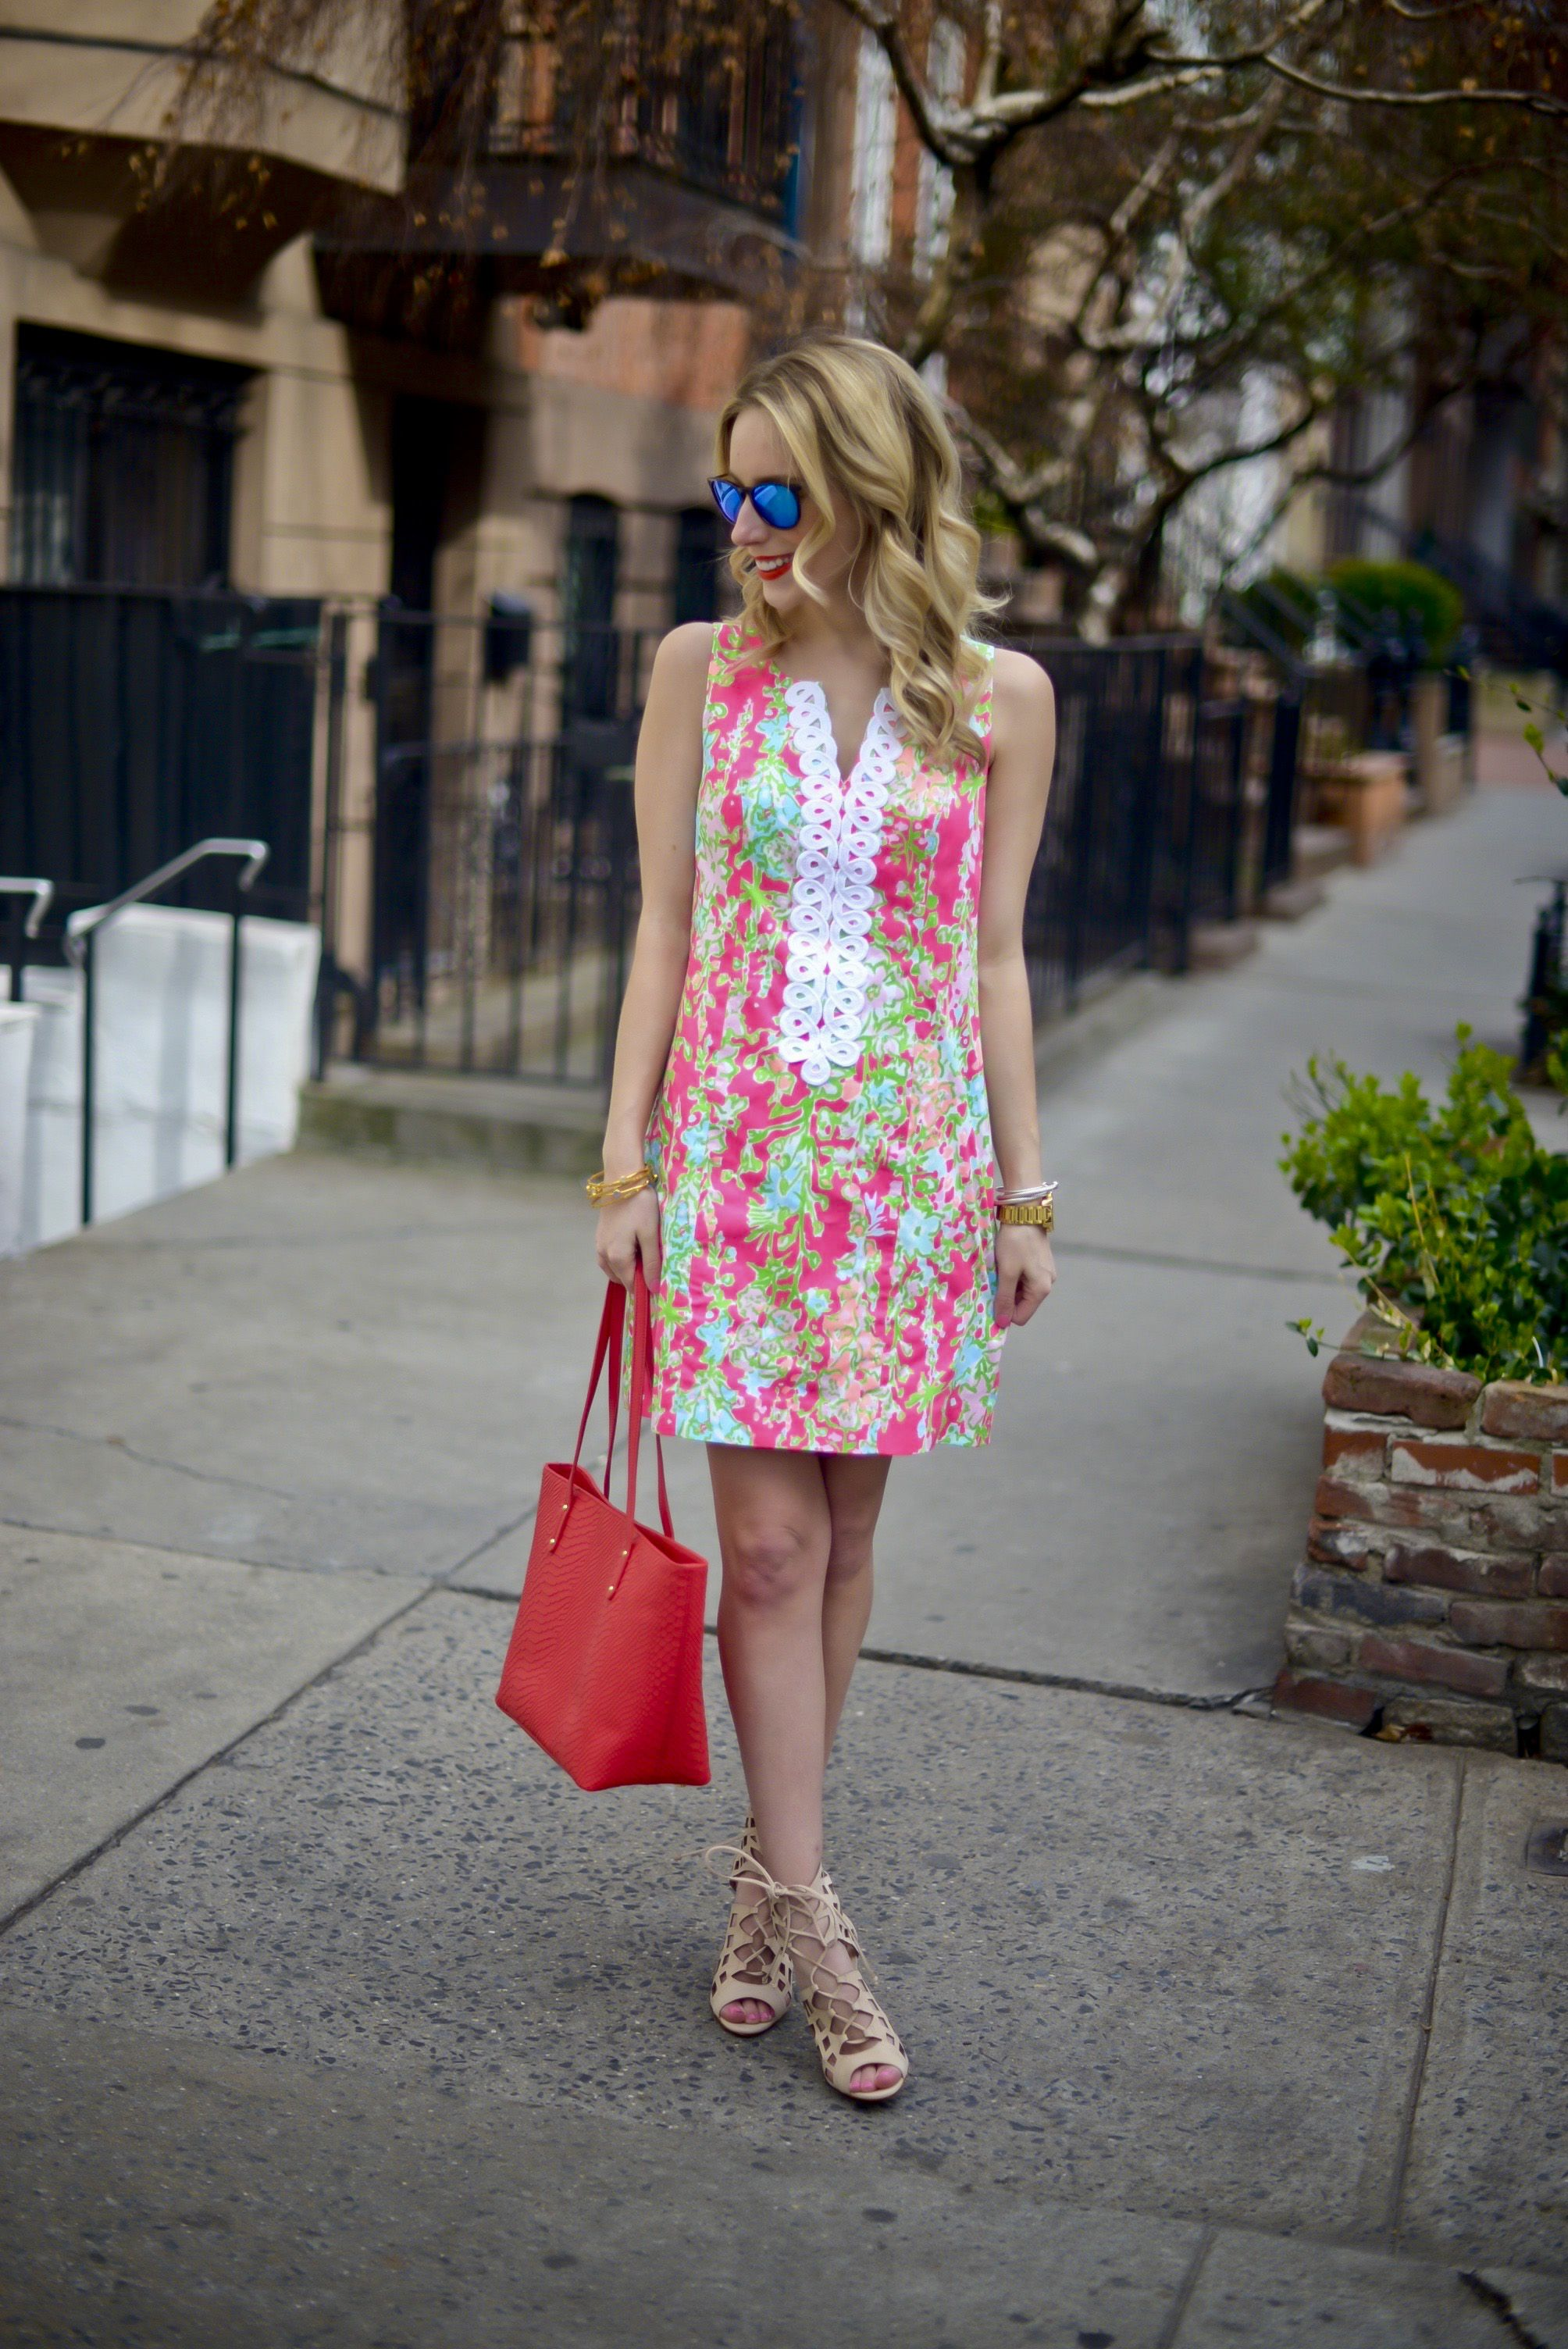 to wear - Inspiration Inspirationfashion lilly pulitzer spring video